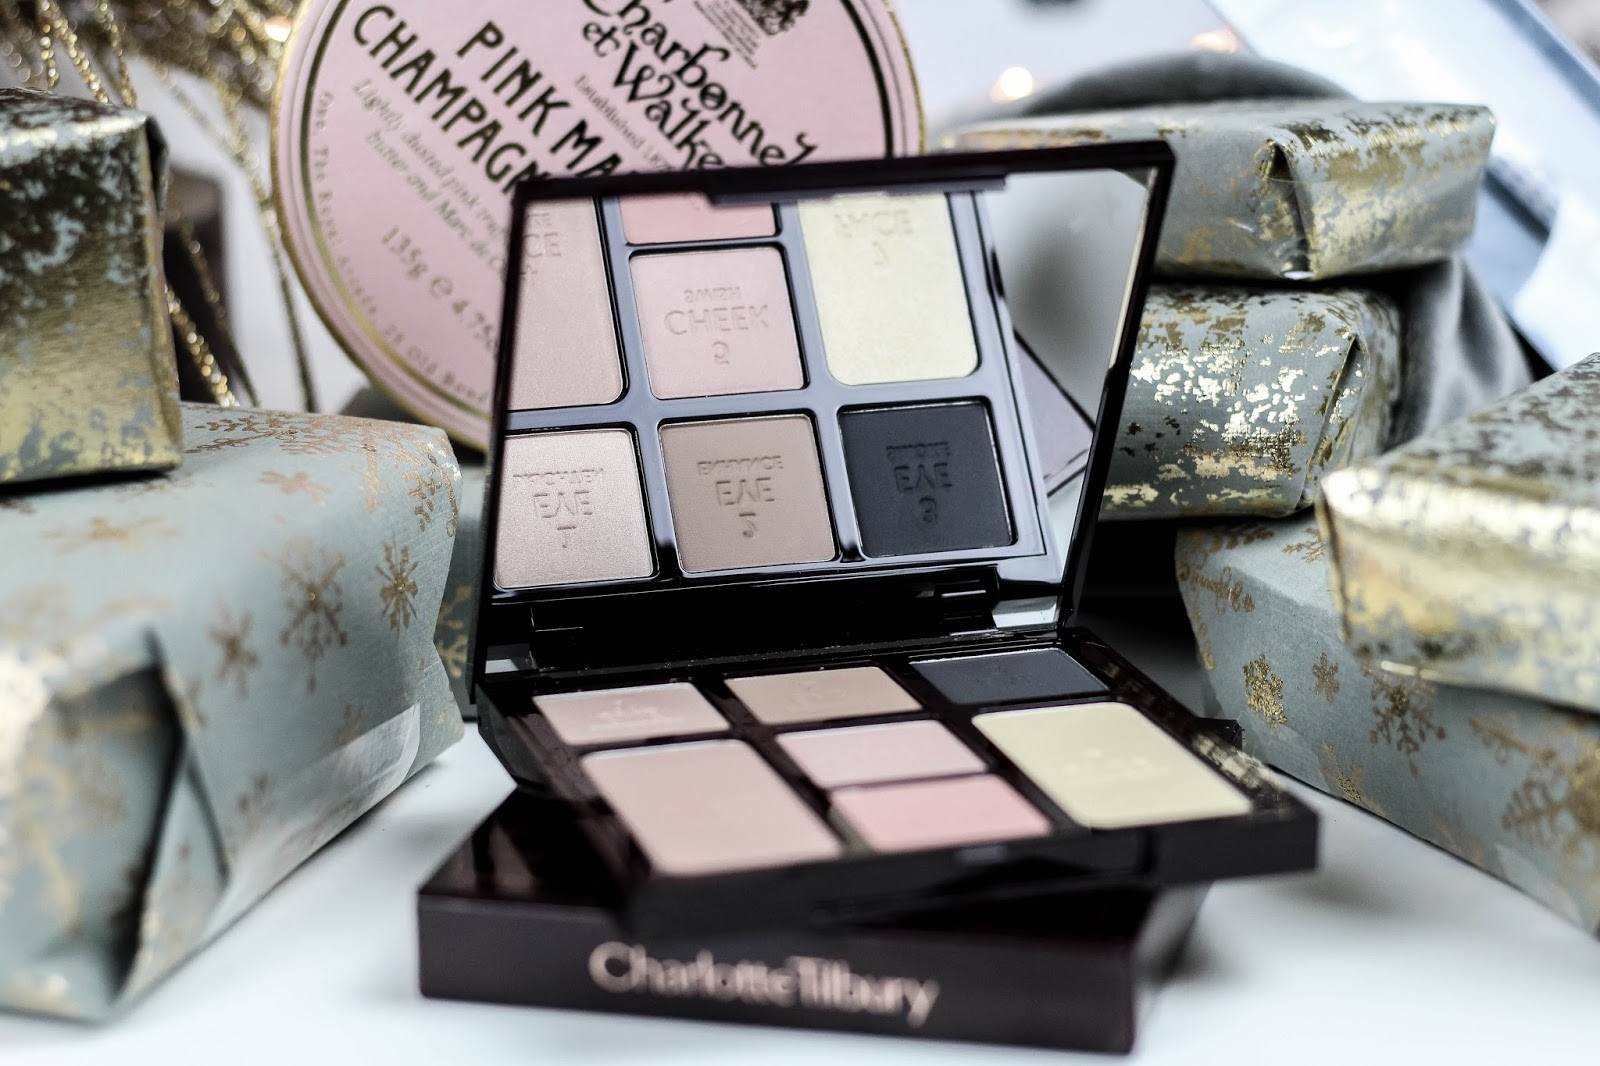 Charlotte Tilbury Instant Look in a Palette Smokey Eye Review